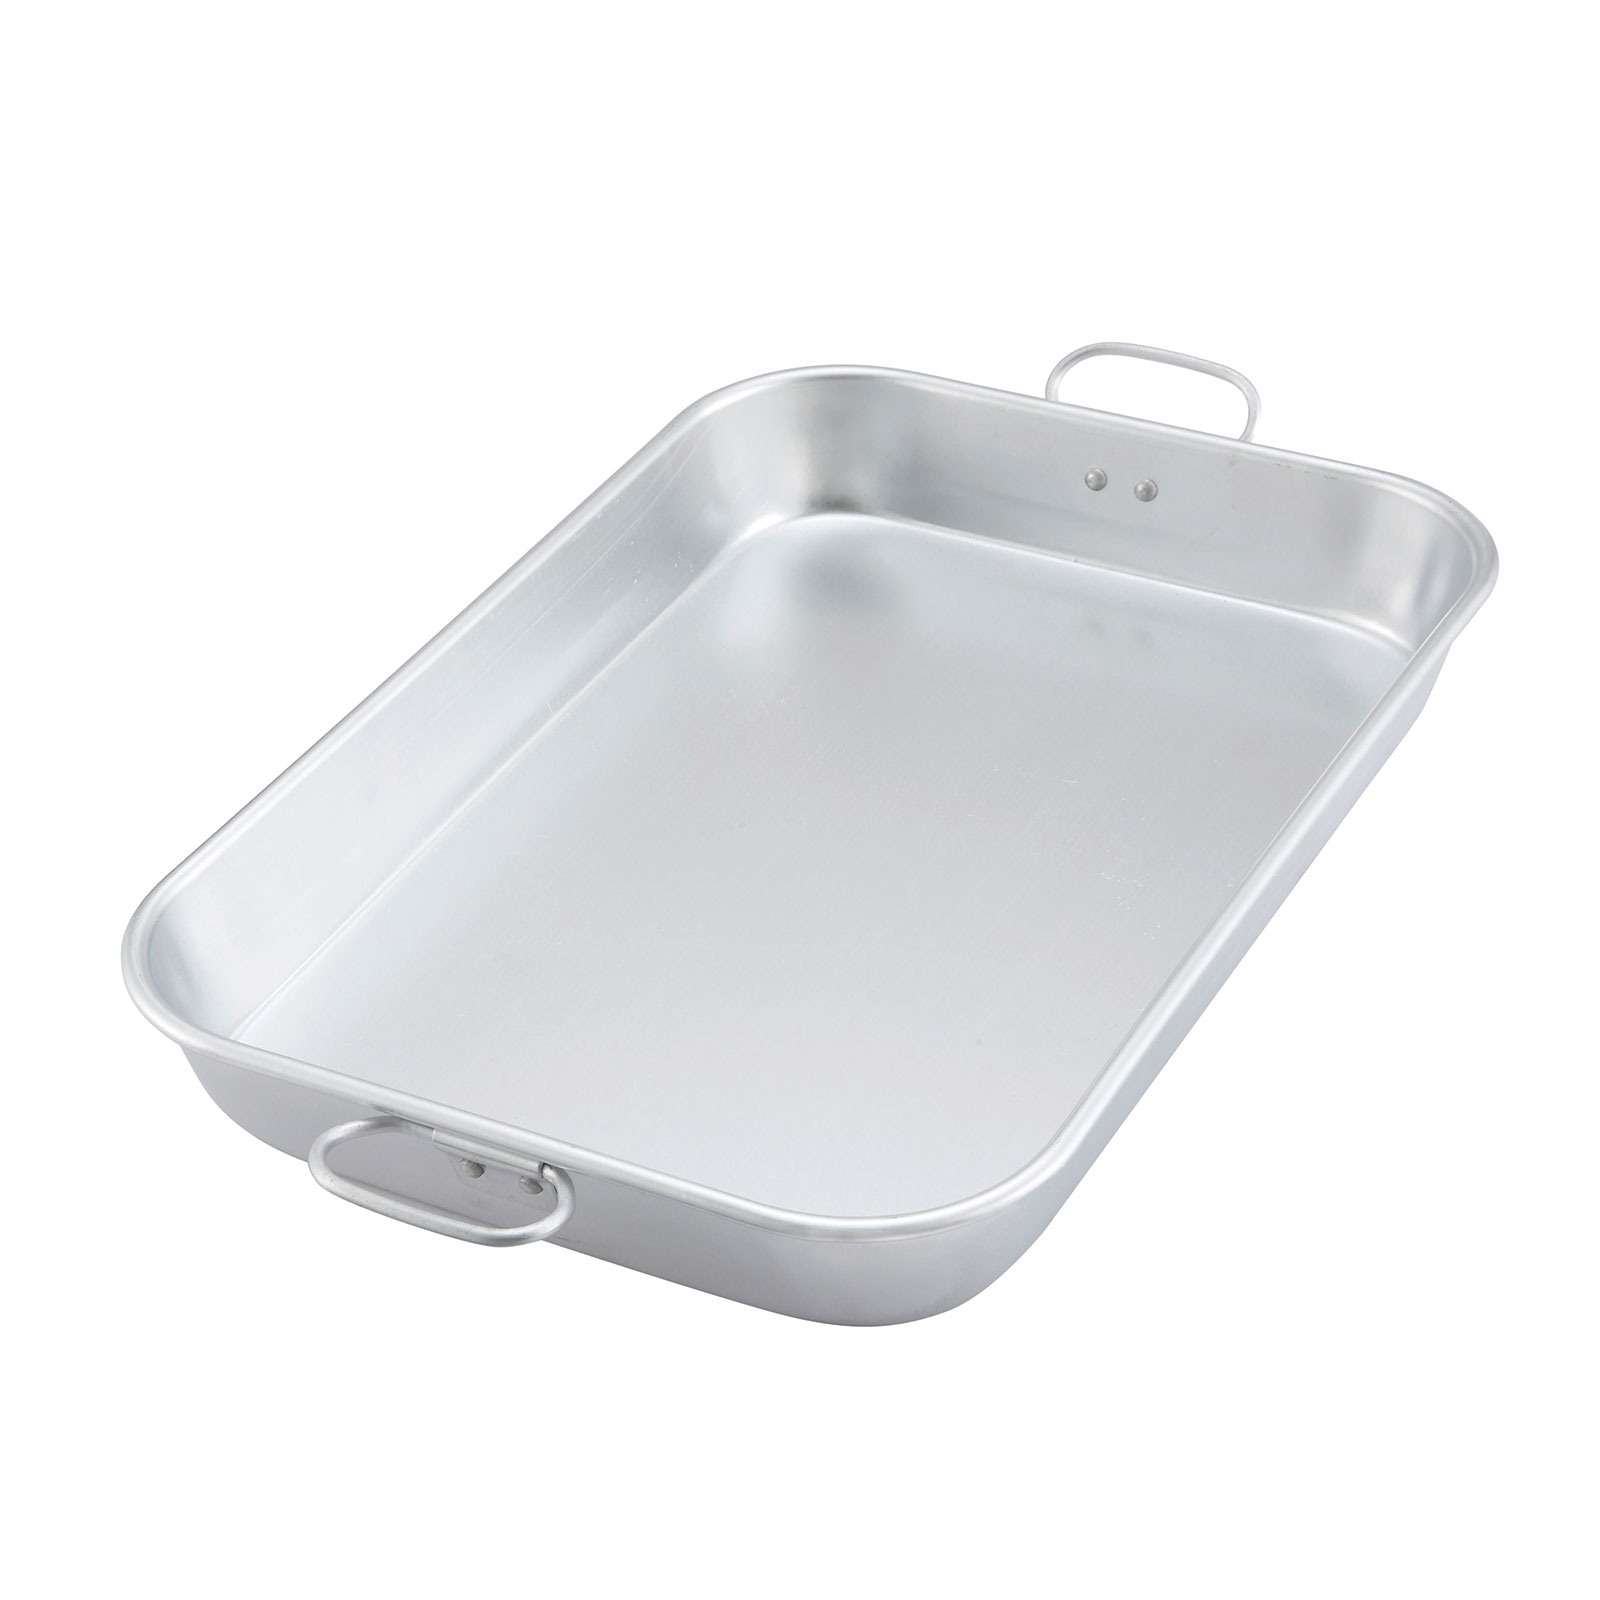 Winco ALBP-1218 bake pan